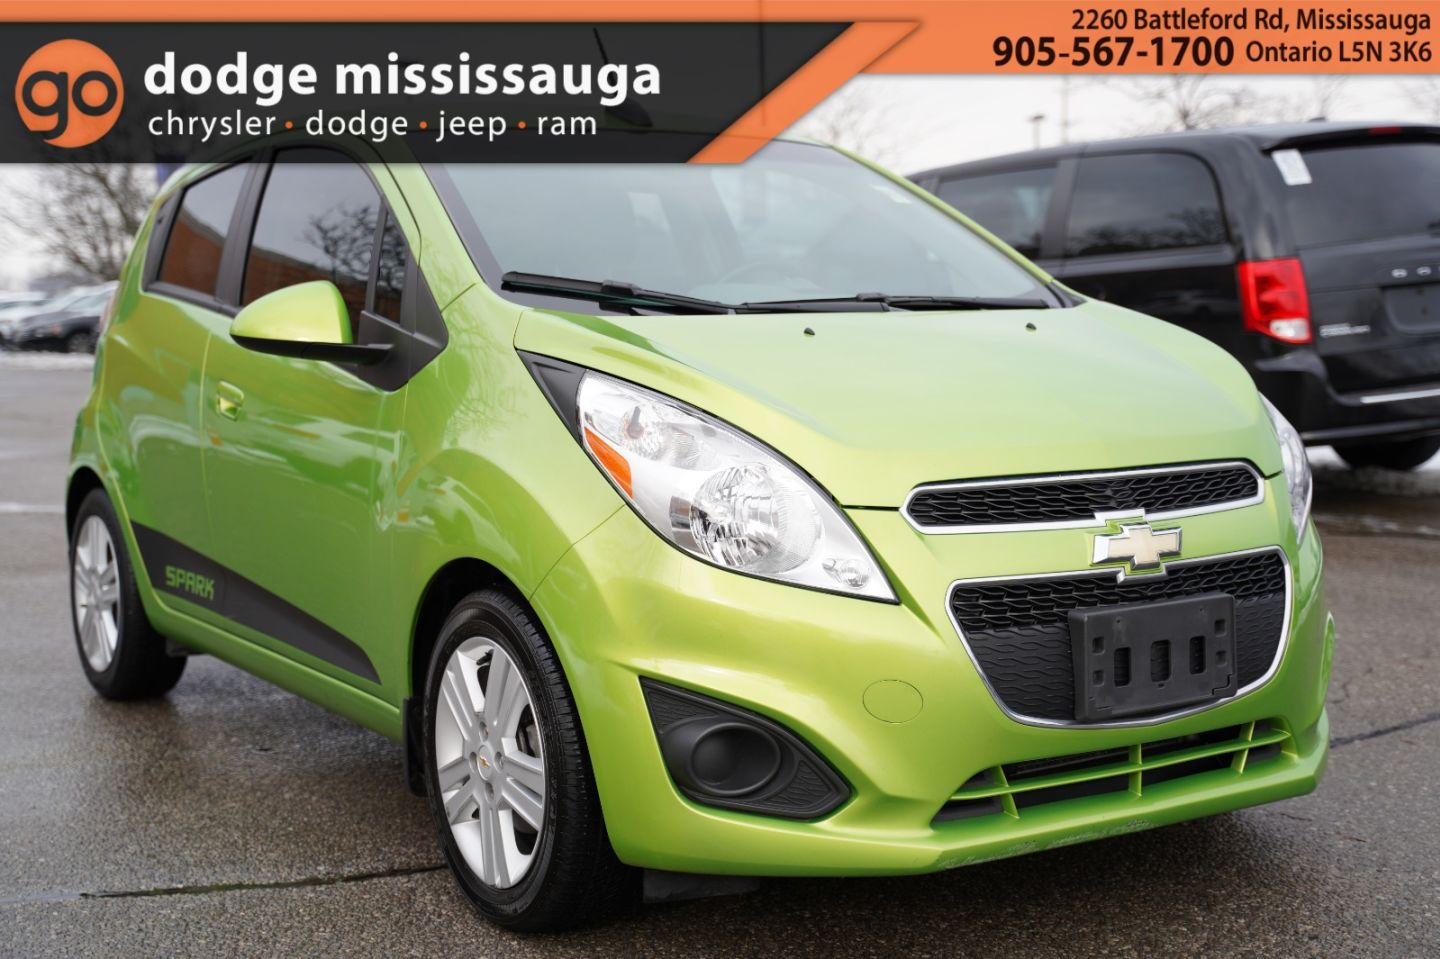 2015 Chevrolet Spark LT for sale in Mississauga, Ontario